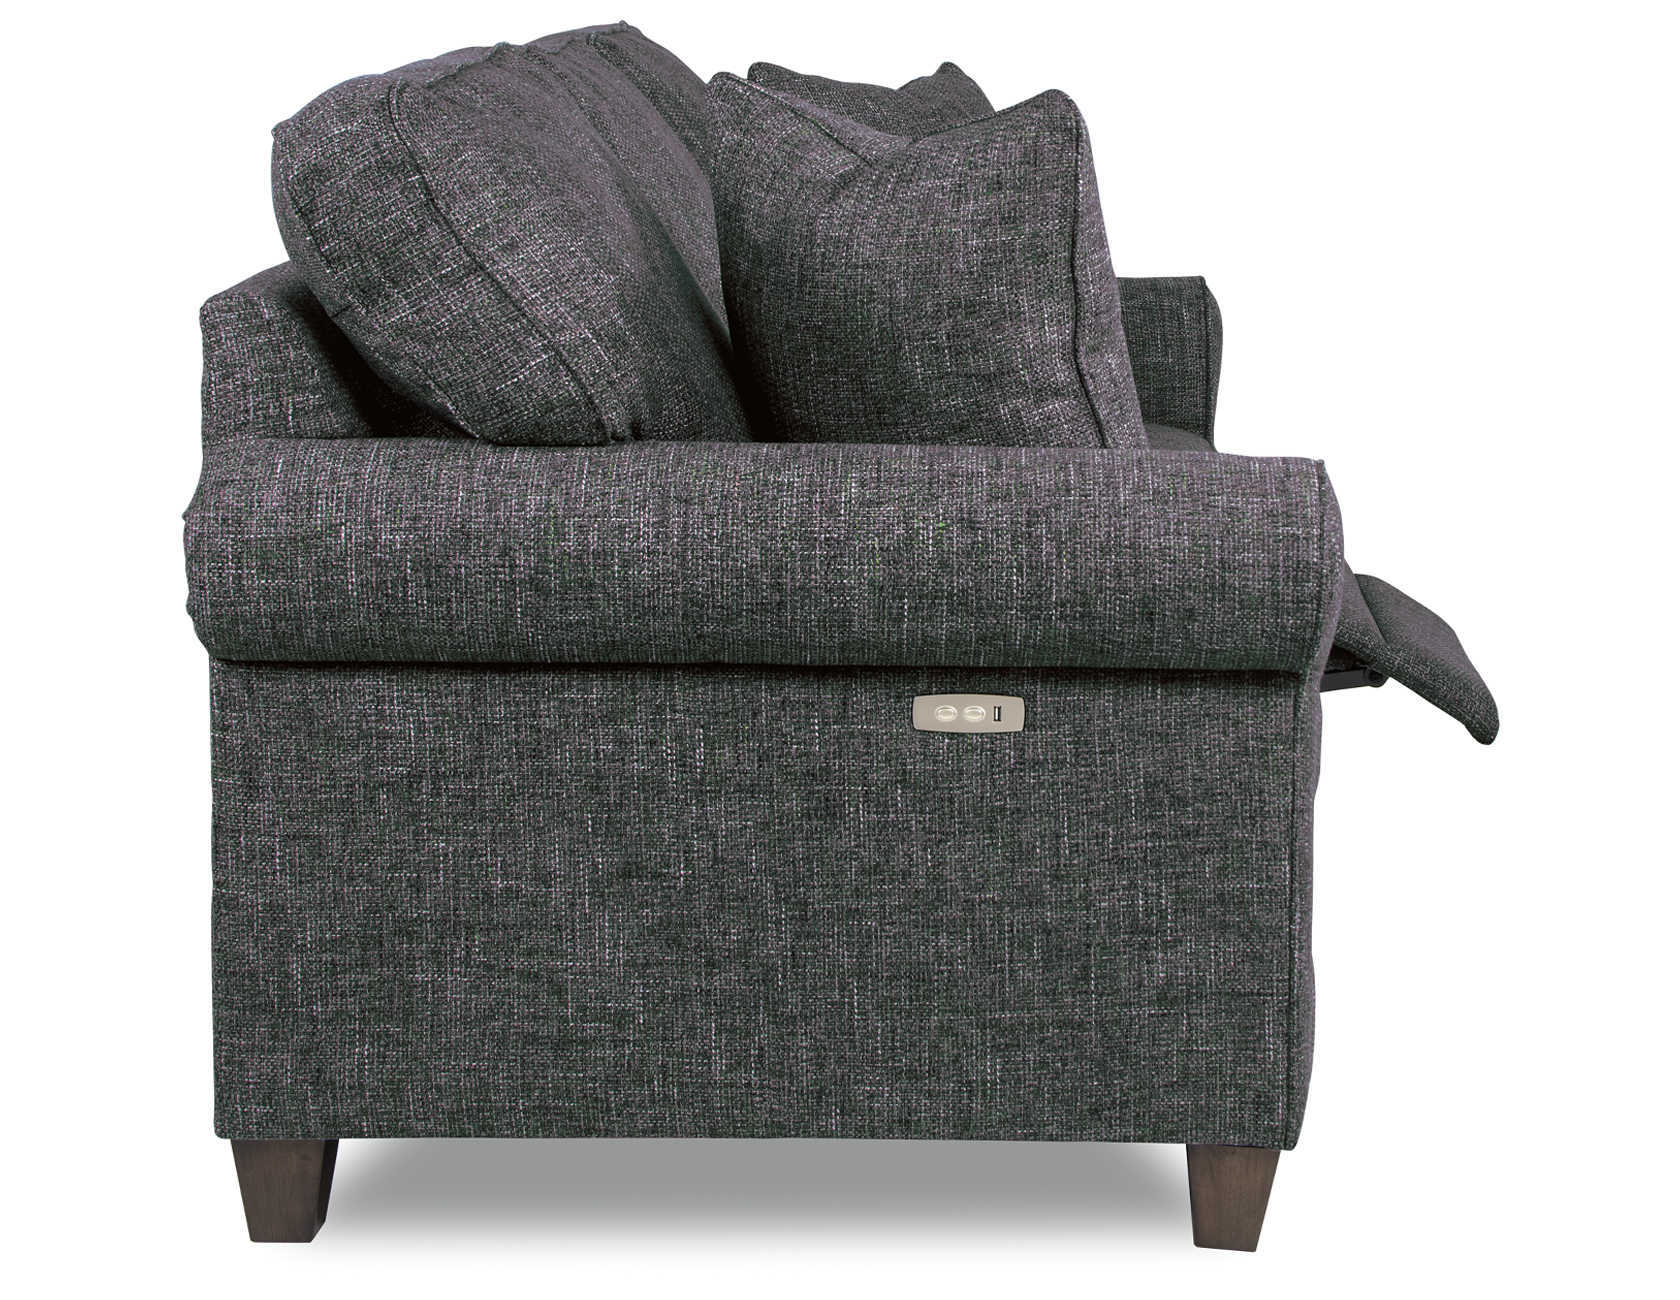 Luke duo reclining sofa side view